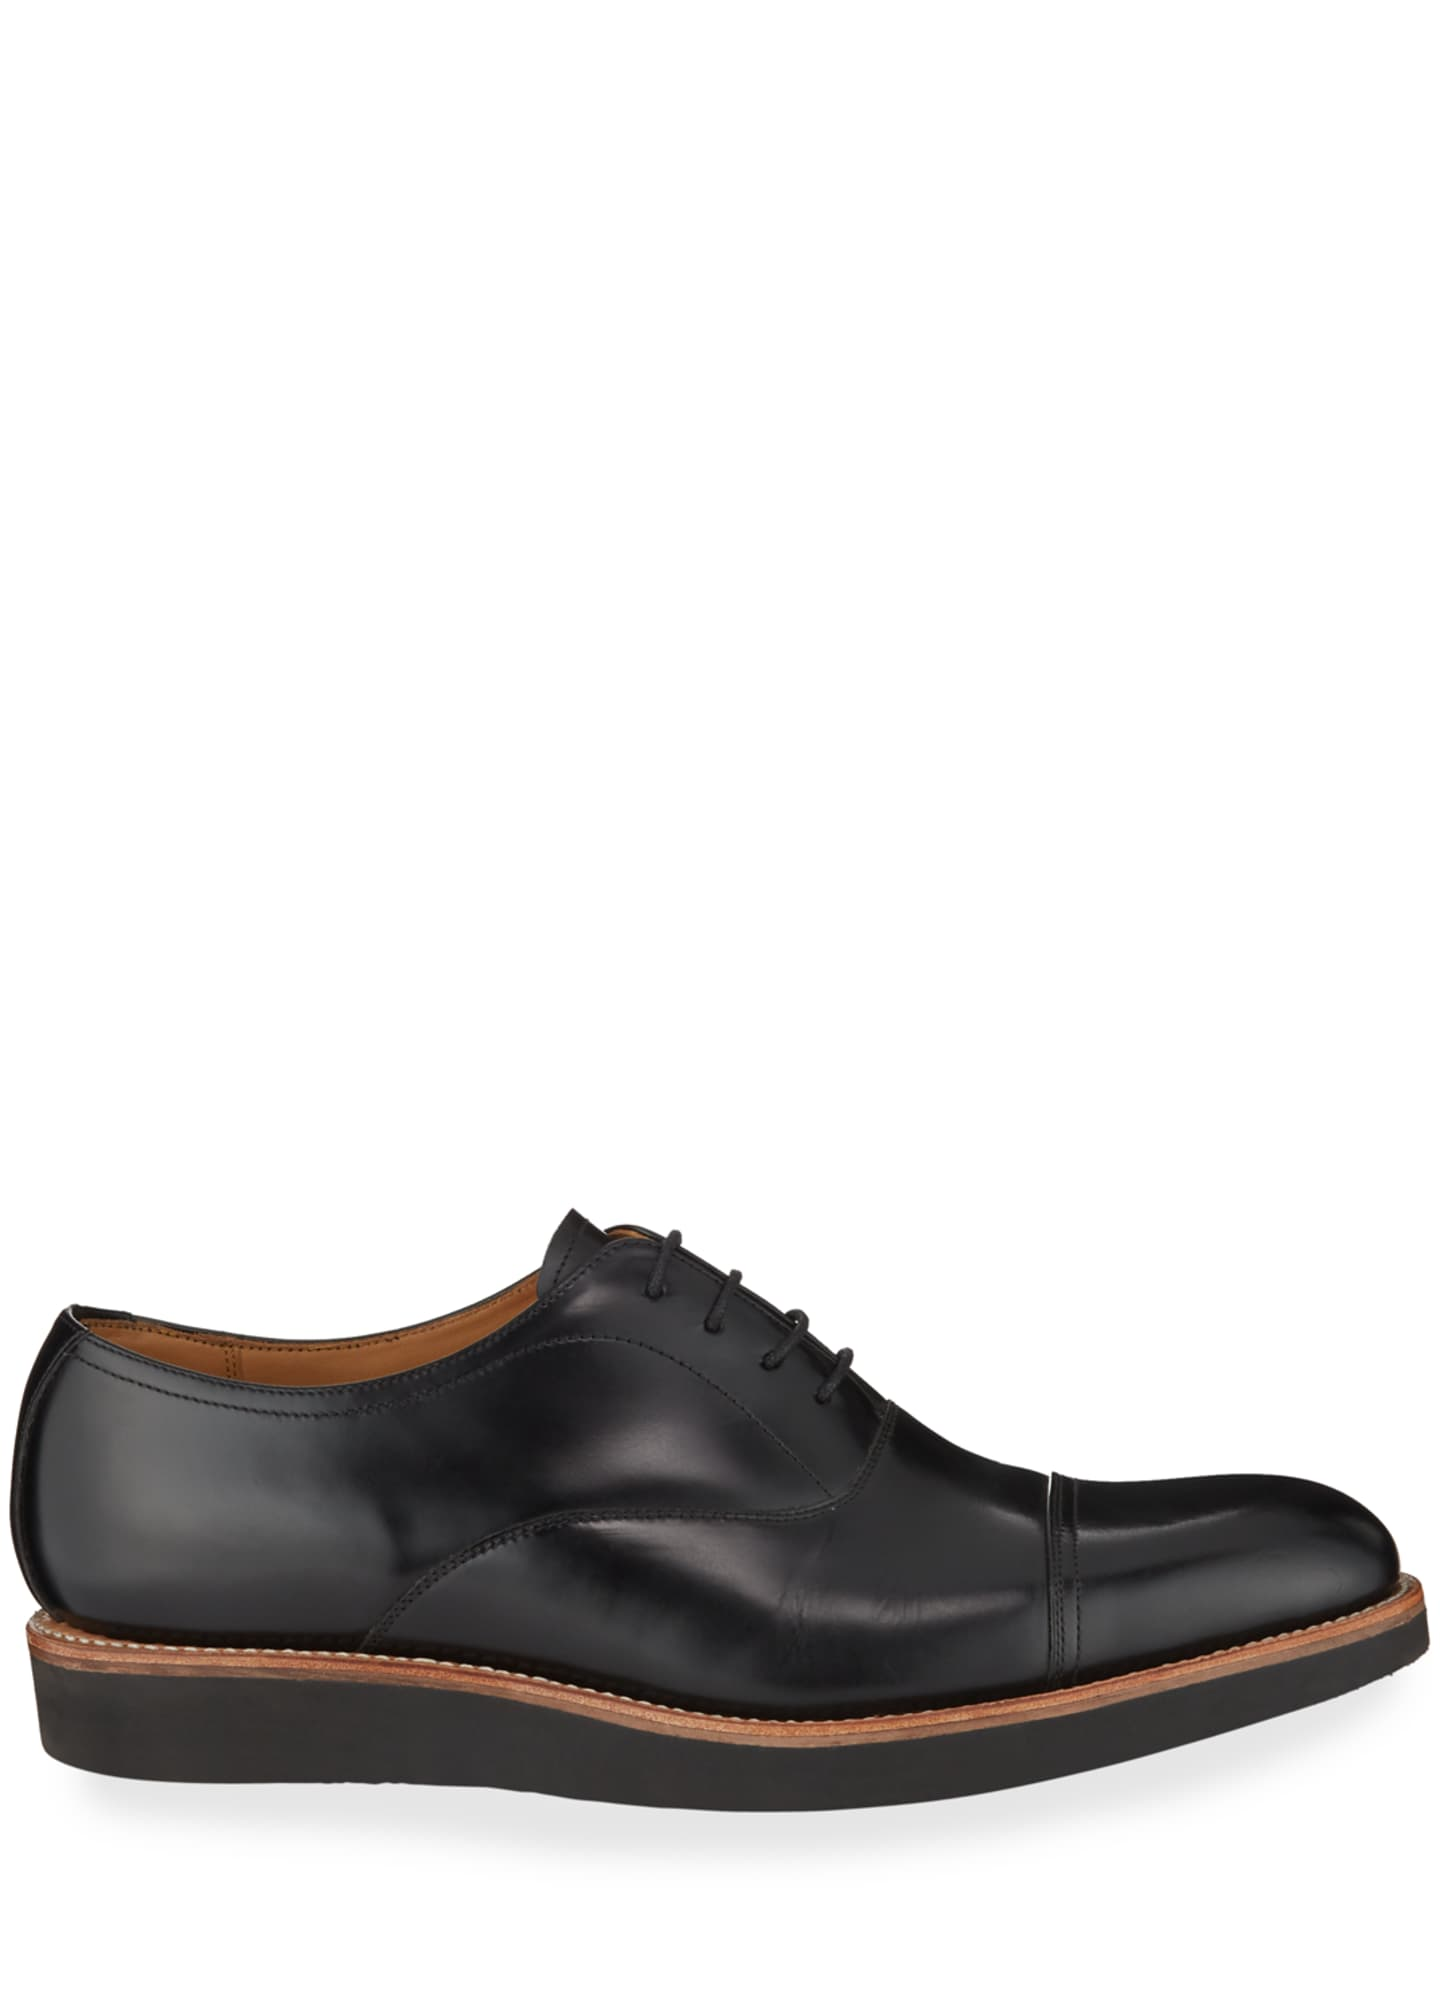 Image 3 of 3: Men's Elliot Leather Oxford Shoes